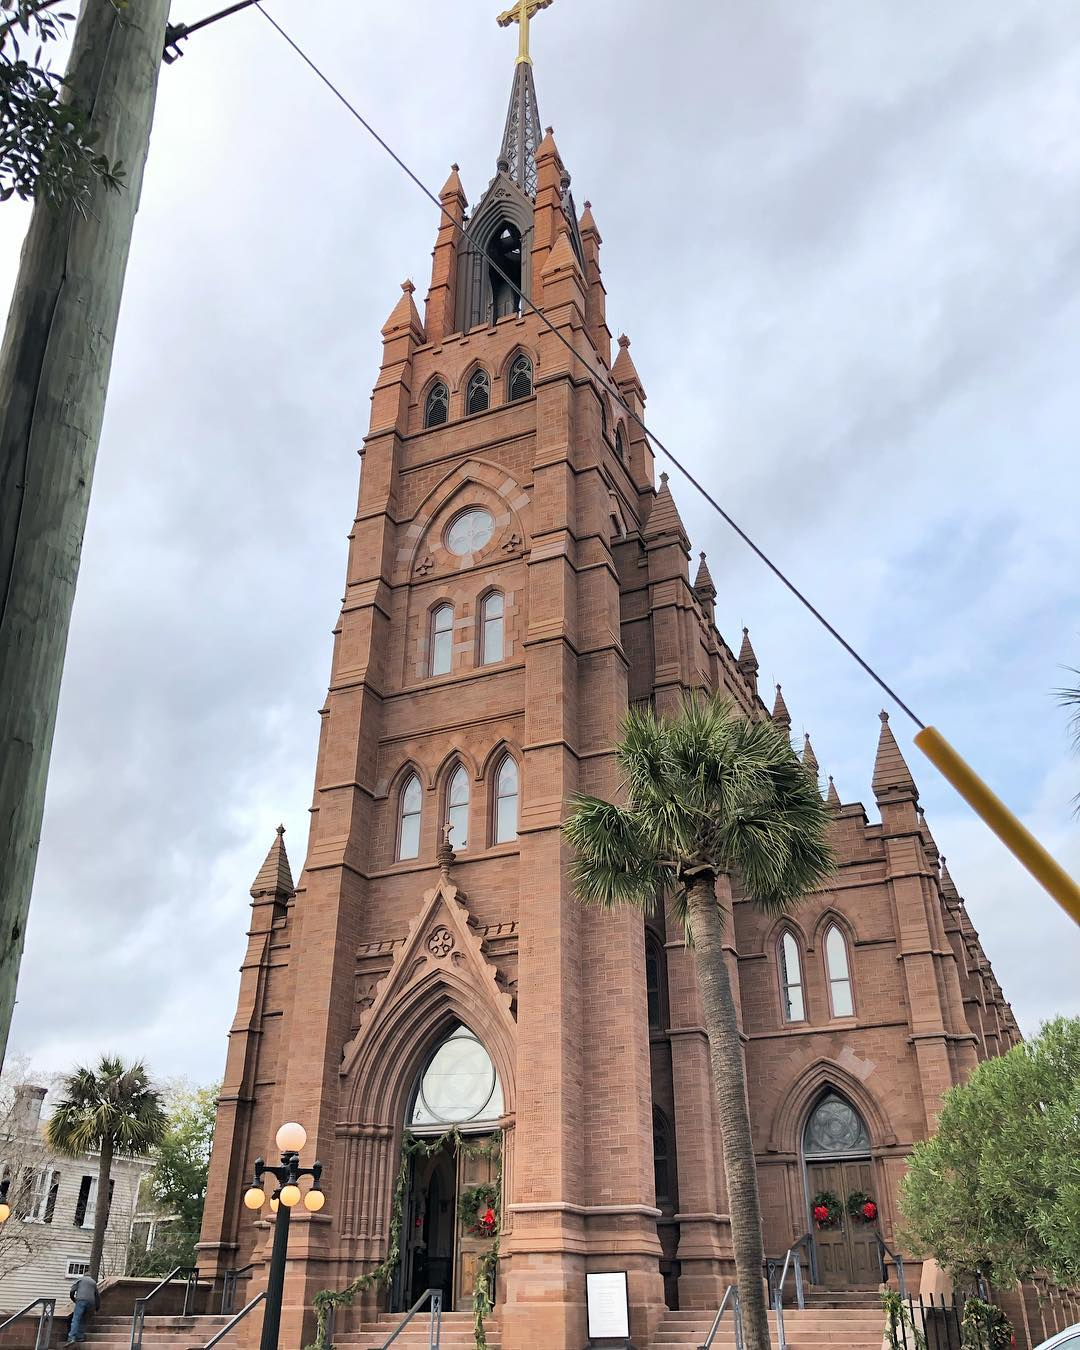 The Cathedral of St. John the Baptist is the mother church of the Roman Catholic Diocese of Charleston. The church was founded in 1800 and this building was built in 1907 in the foundation of the church that burned in 1854